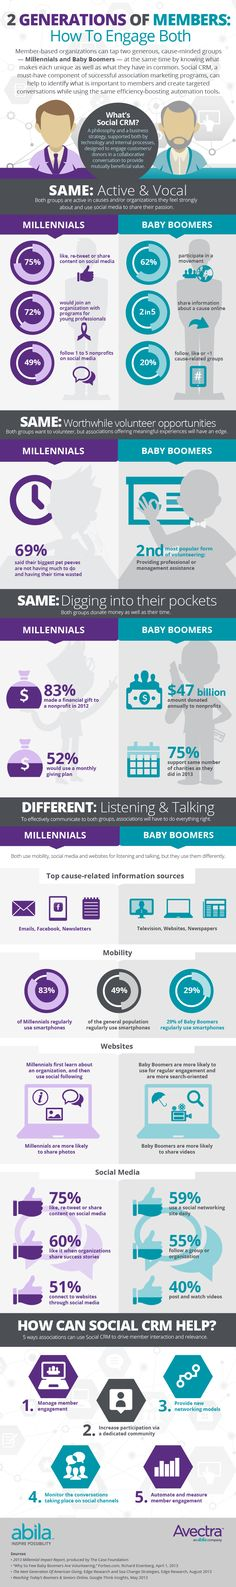 Infographic: 2 Generations of Members: How To Engage Both #infographic